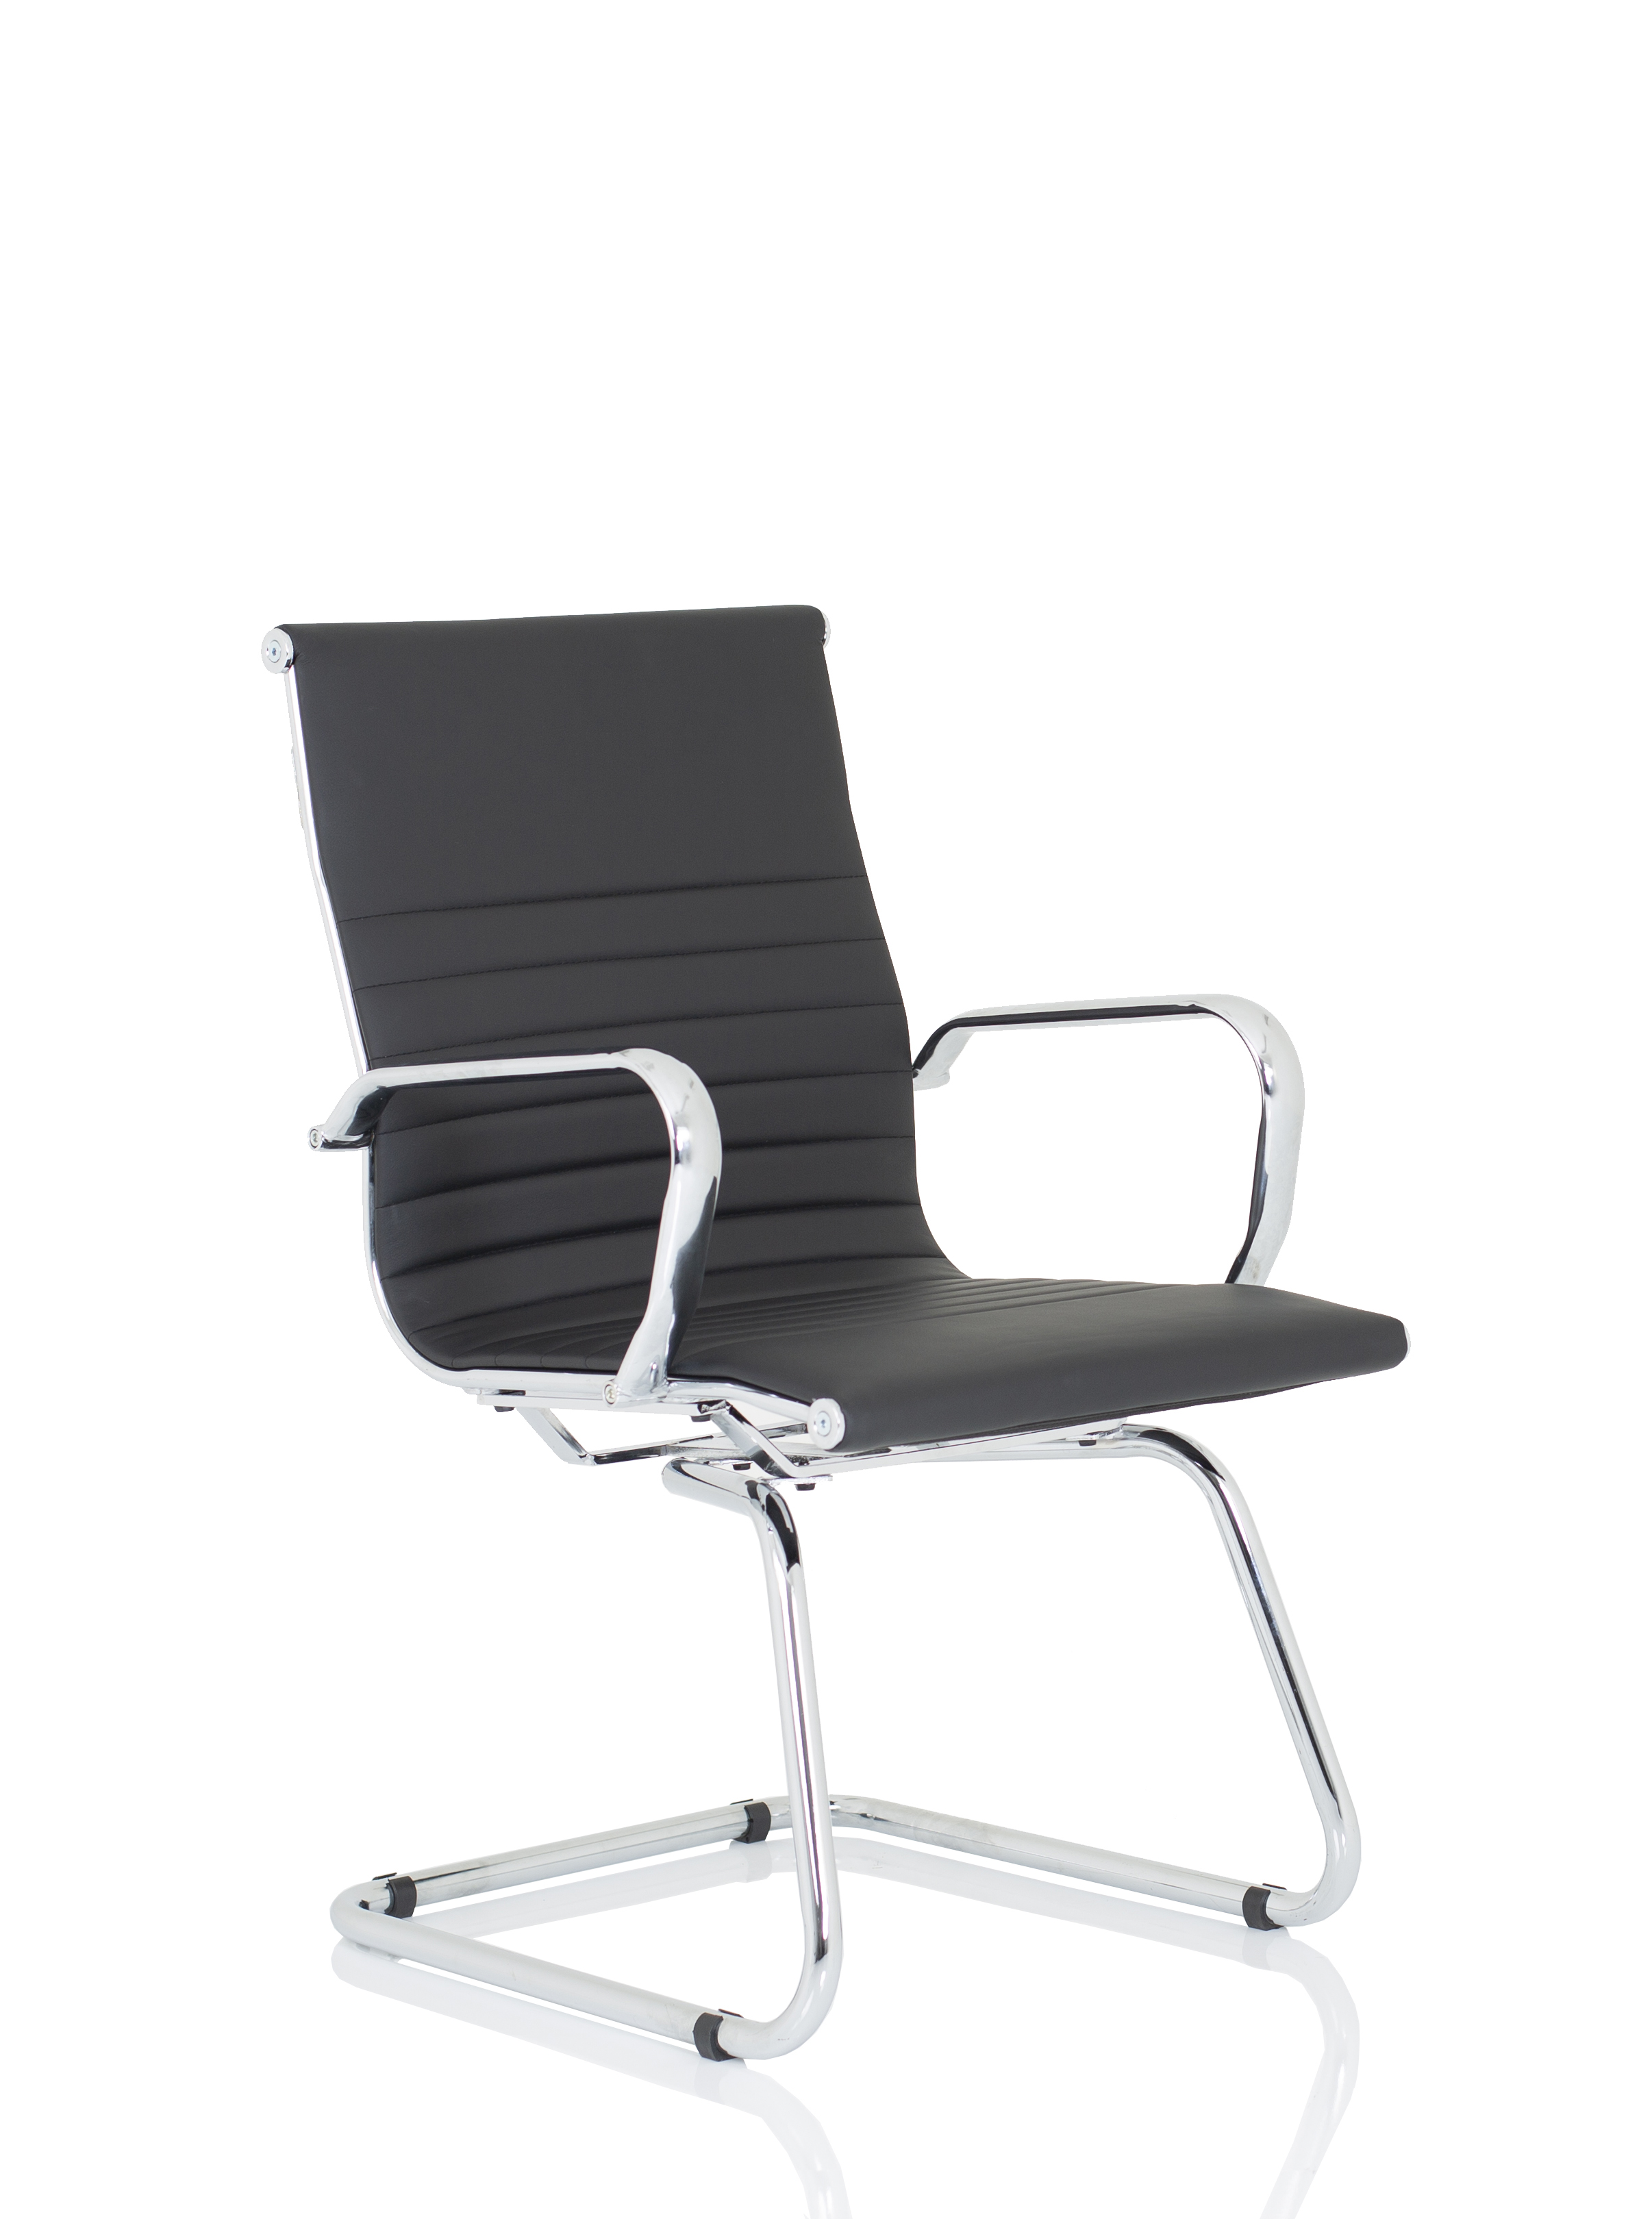 Reception Chairs Nola Black Soft Bonded Leather Cantilever Chair OP000224